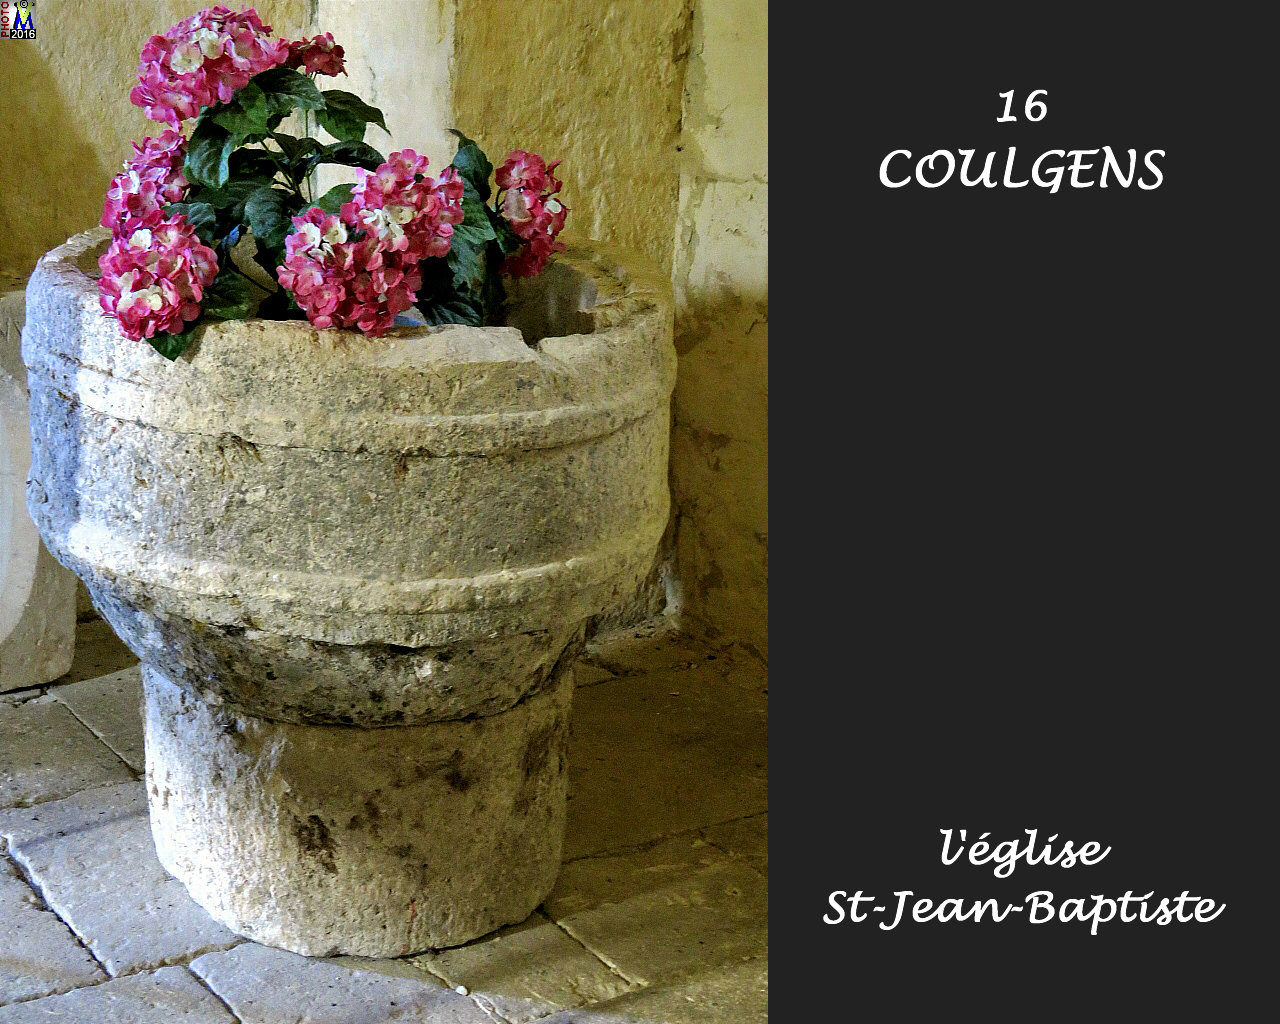 16COULGENS_eglise_1150.jpg